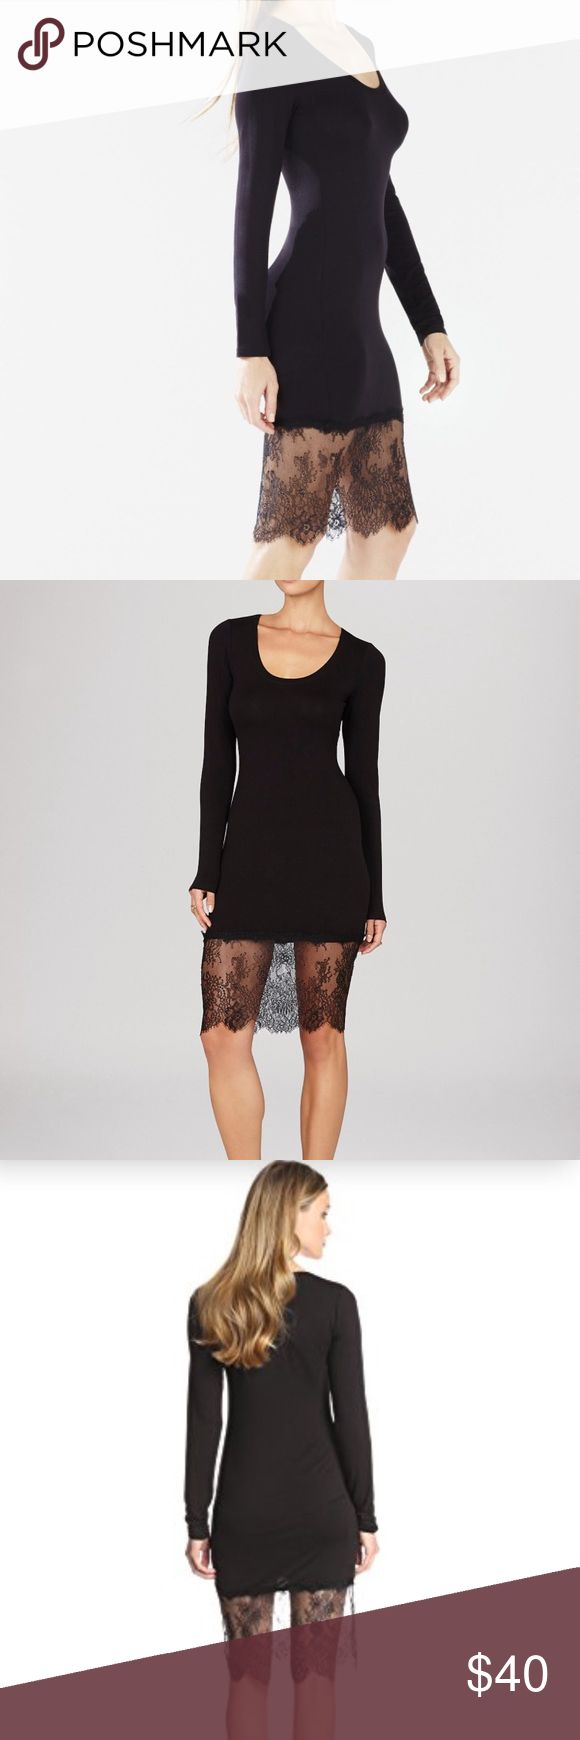 BCBG Max Azria Livi Lace-Hem dress A versatile long-sleeve dress you can pair with your fave booties for a carefree look with endless trend-setting appeal. BCBGMaxAzria Dresses Long Sleeve